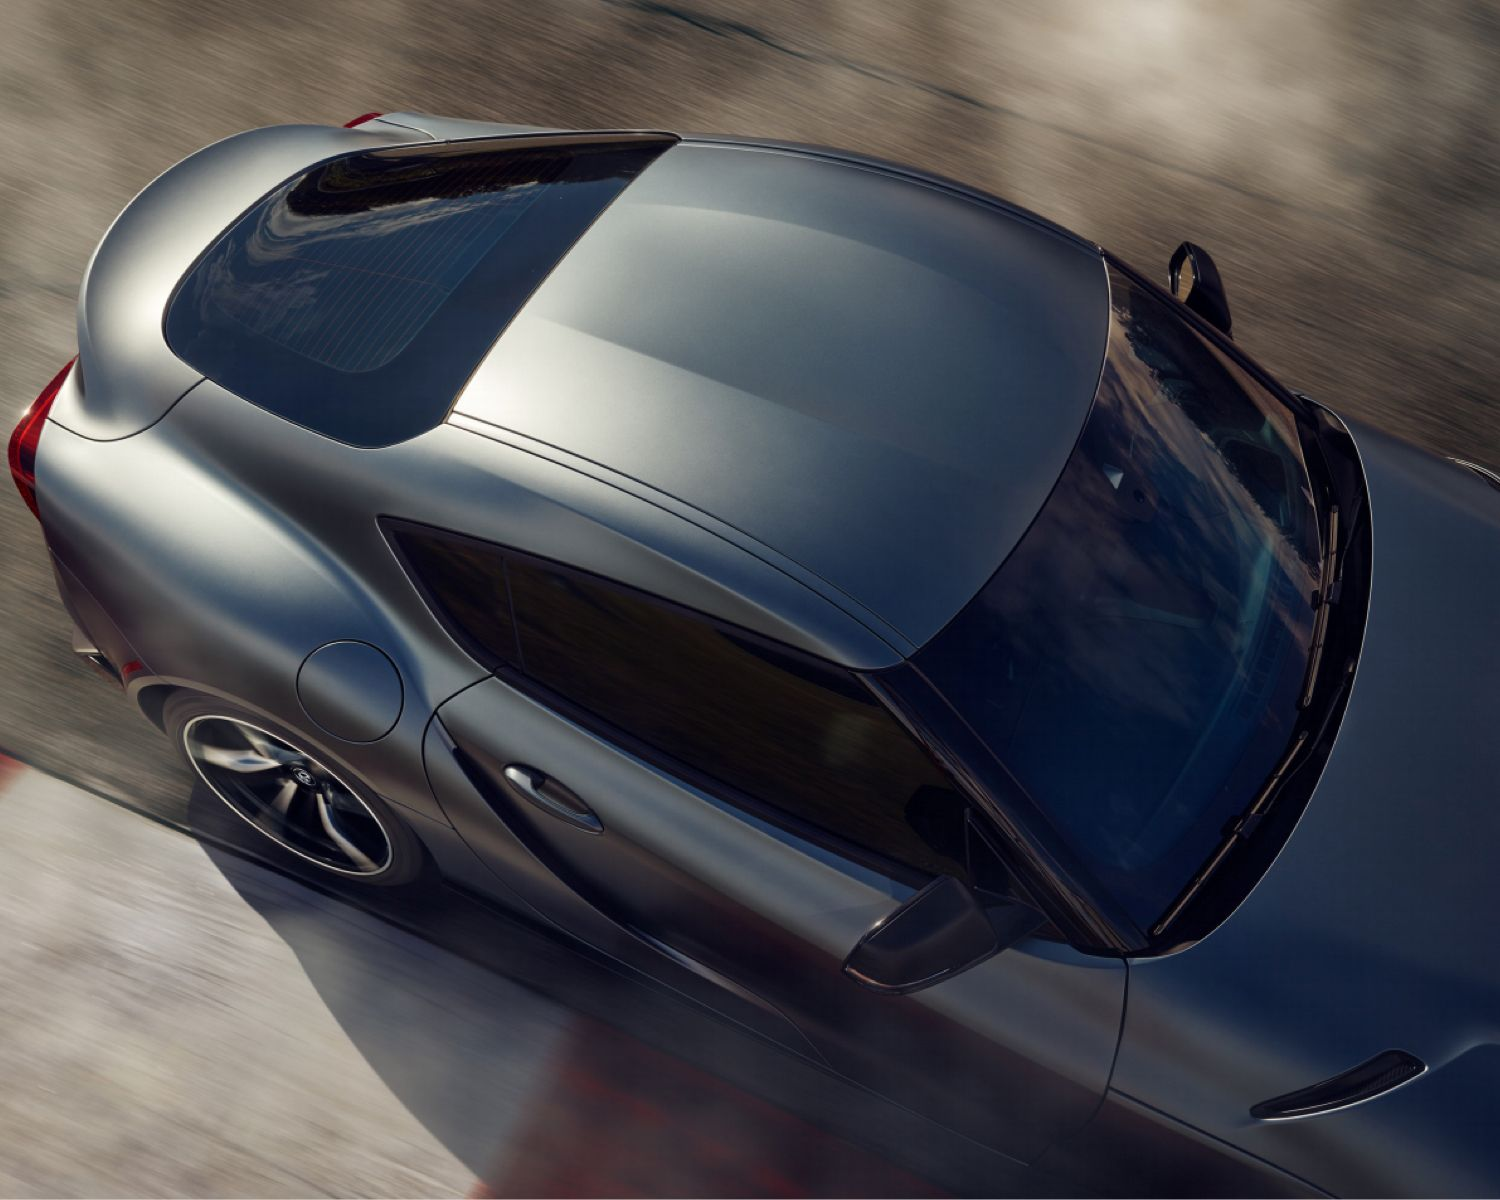 2022 GR Supra 3.0 shown in Phantom. Premium paint colour shown, available at additional cost.